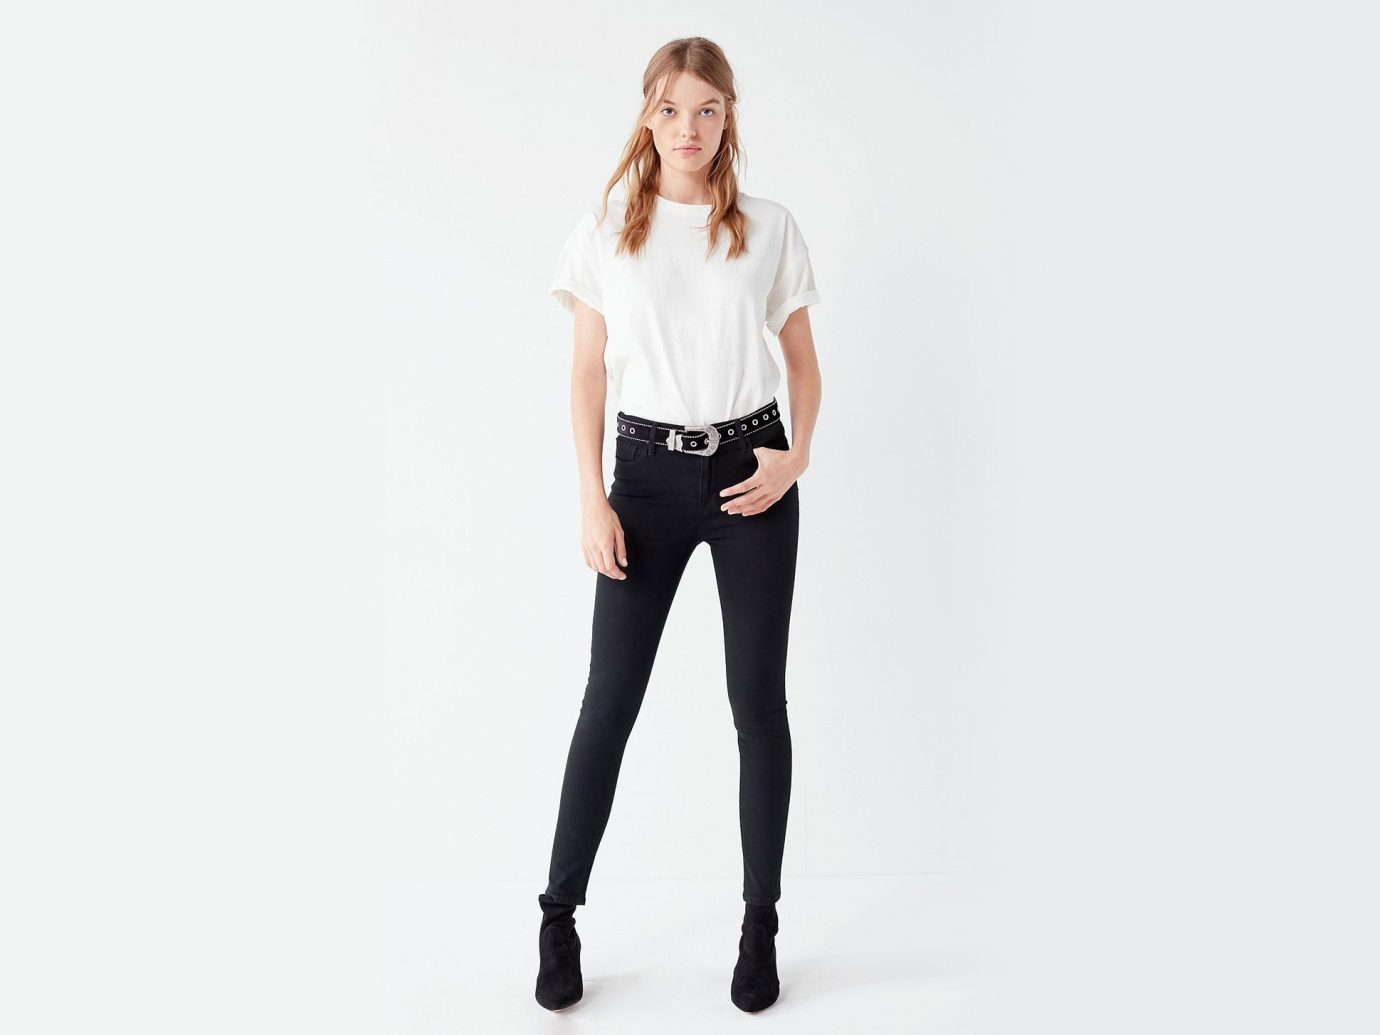 Style + Design Travel Shop clothing white fashion model jeans shoulder standing waist joint sleeve leggings neck abdomen trunk trousers tights supermodel photo shoot denim trouser